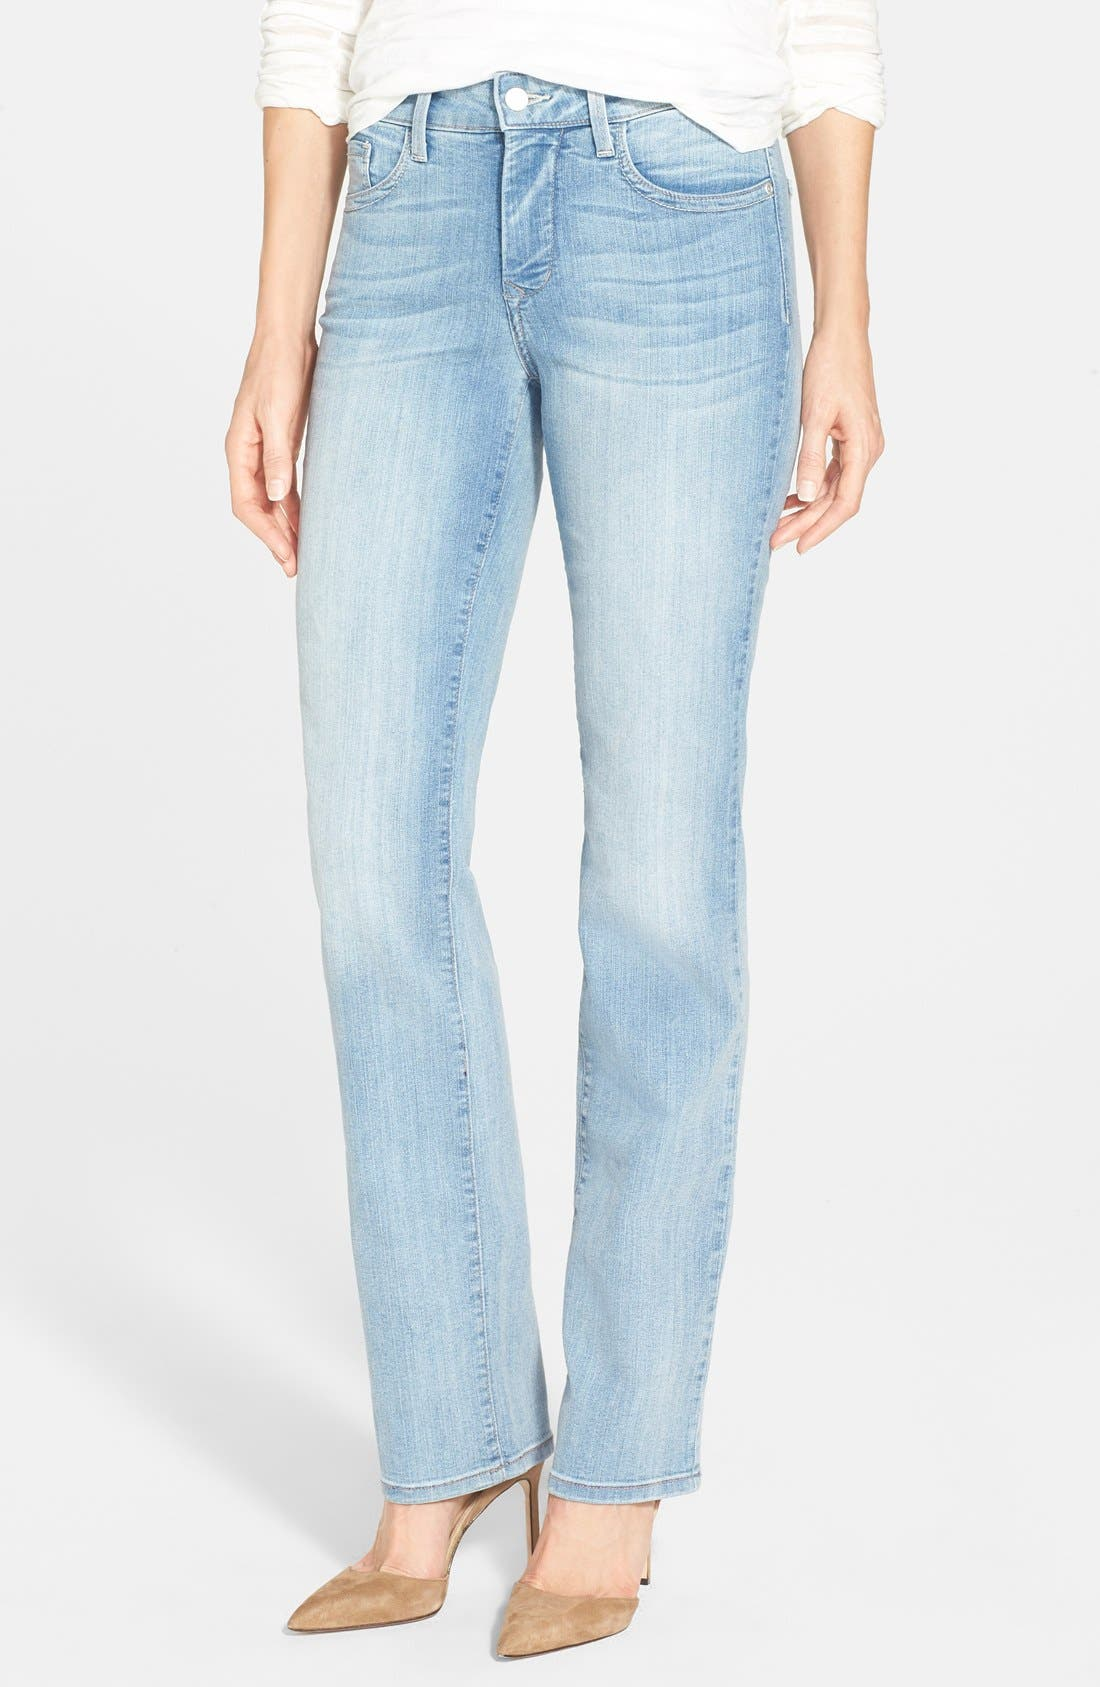 Alternate Image 1 Selected - NYDJ 'Marilyn' Stretch Straight Leg Jeans (Manhattan Beach)